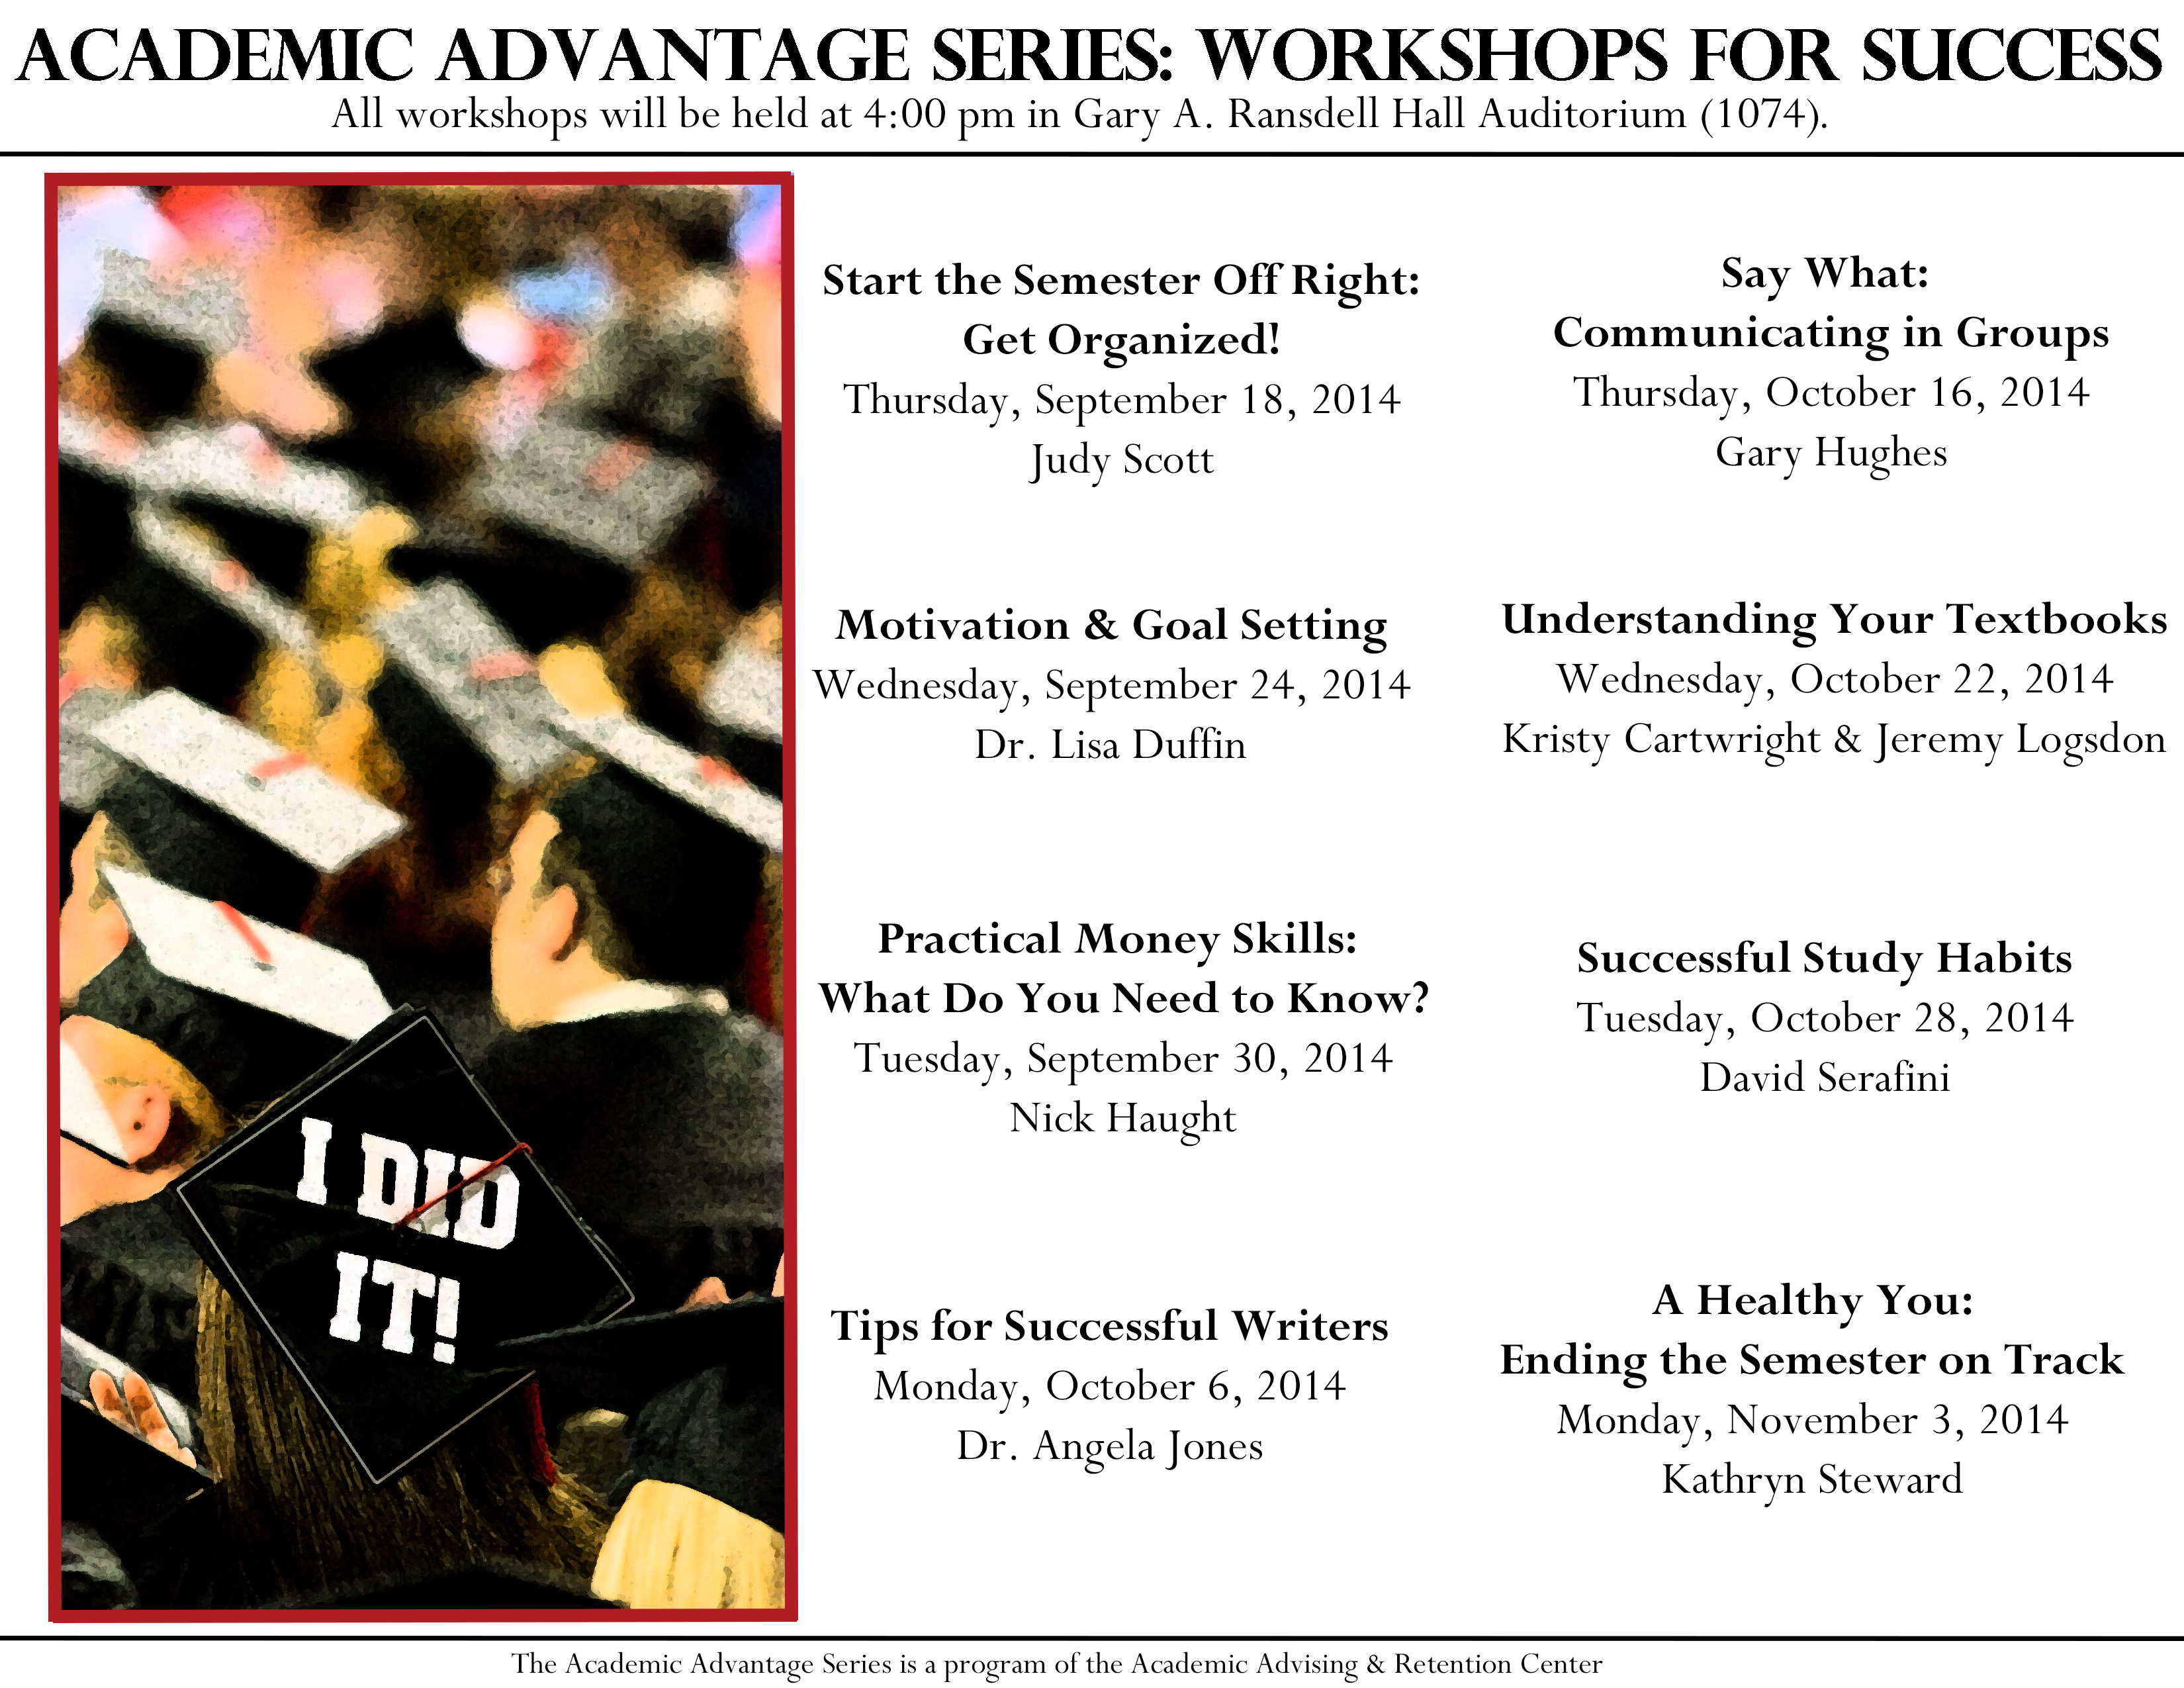 Academic Advantage Series